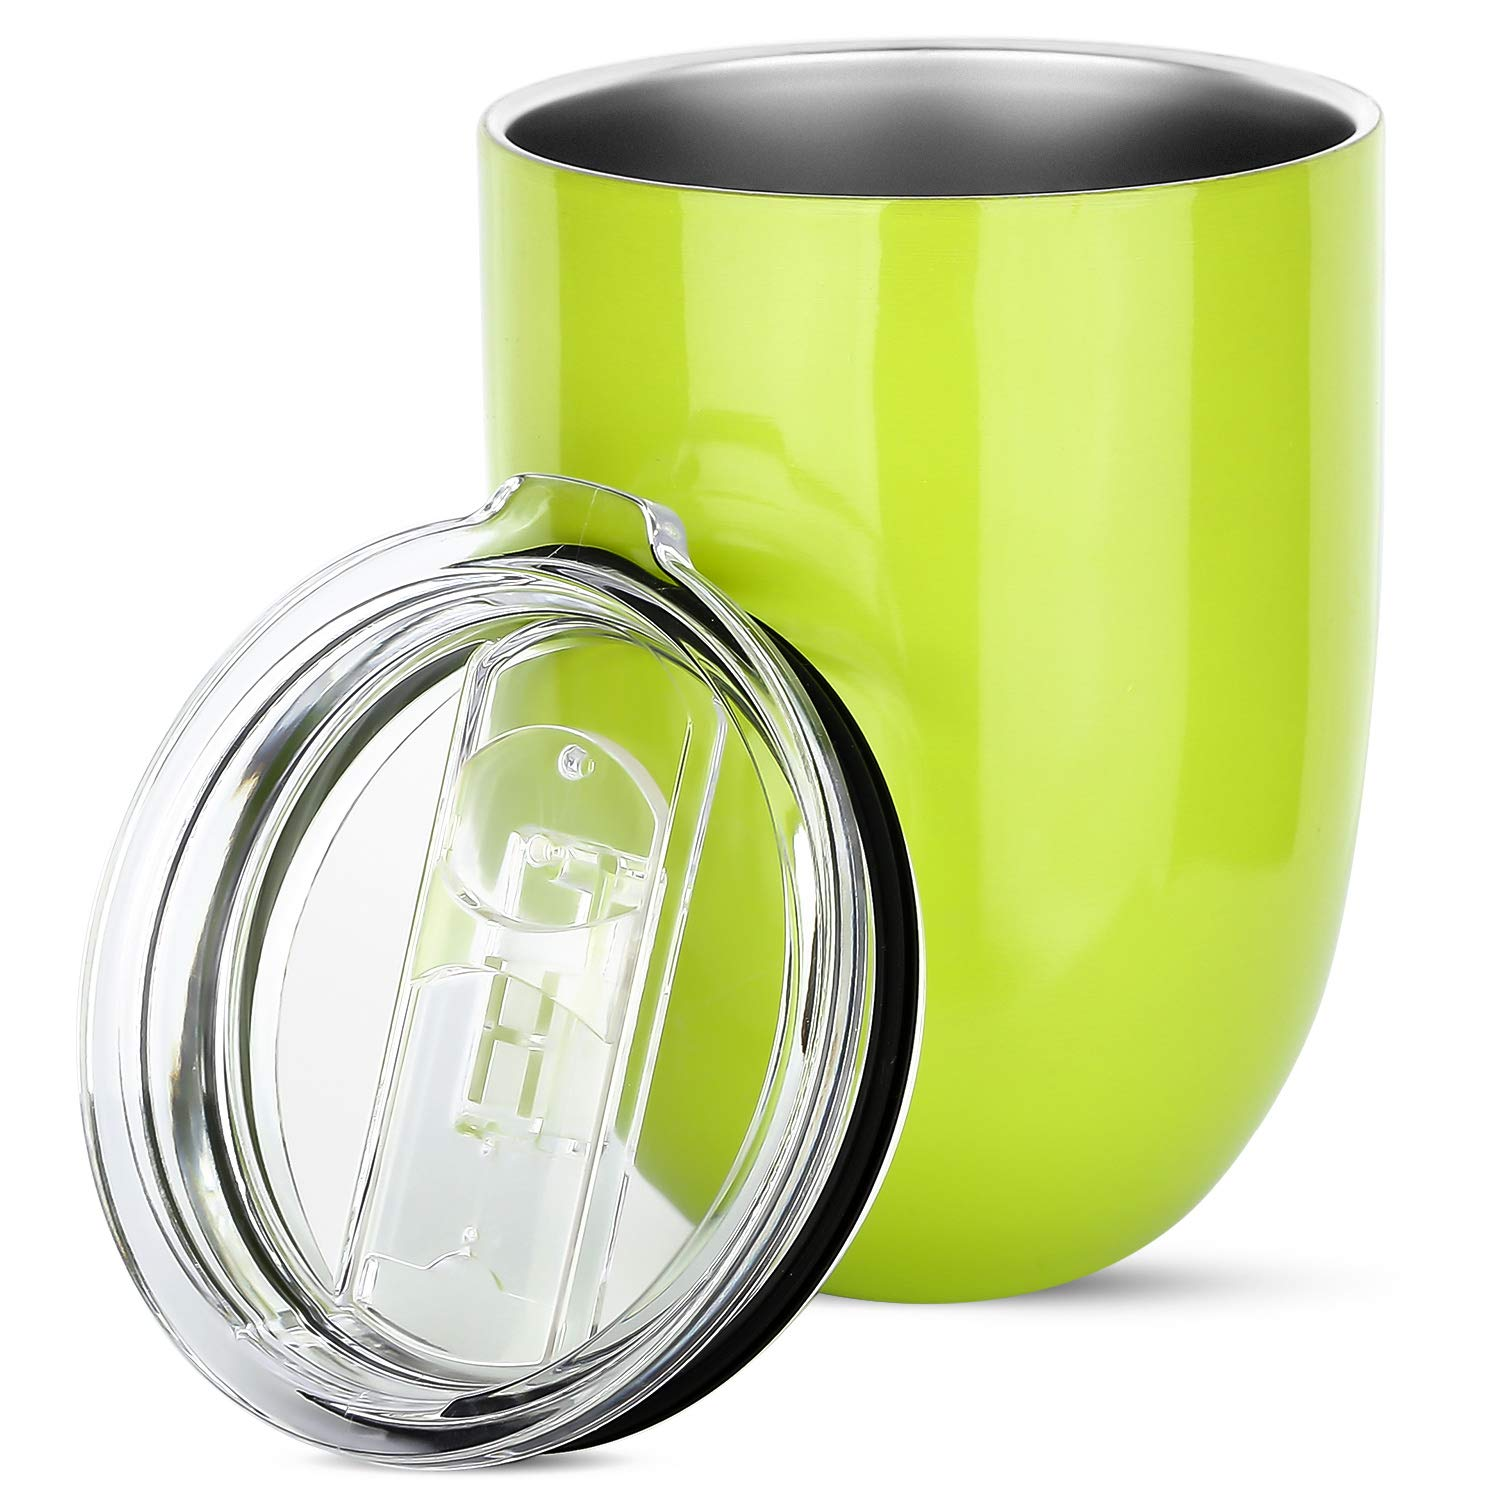 Insulated Wine Tumbler with Lid, Stainless Steel Insulated Stemless Glass Cup for Wine Water Coffee Drinks Champagne Cocktail at Home Party or Office, BPA Free